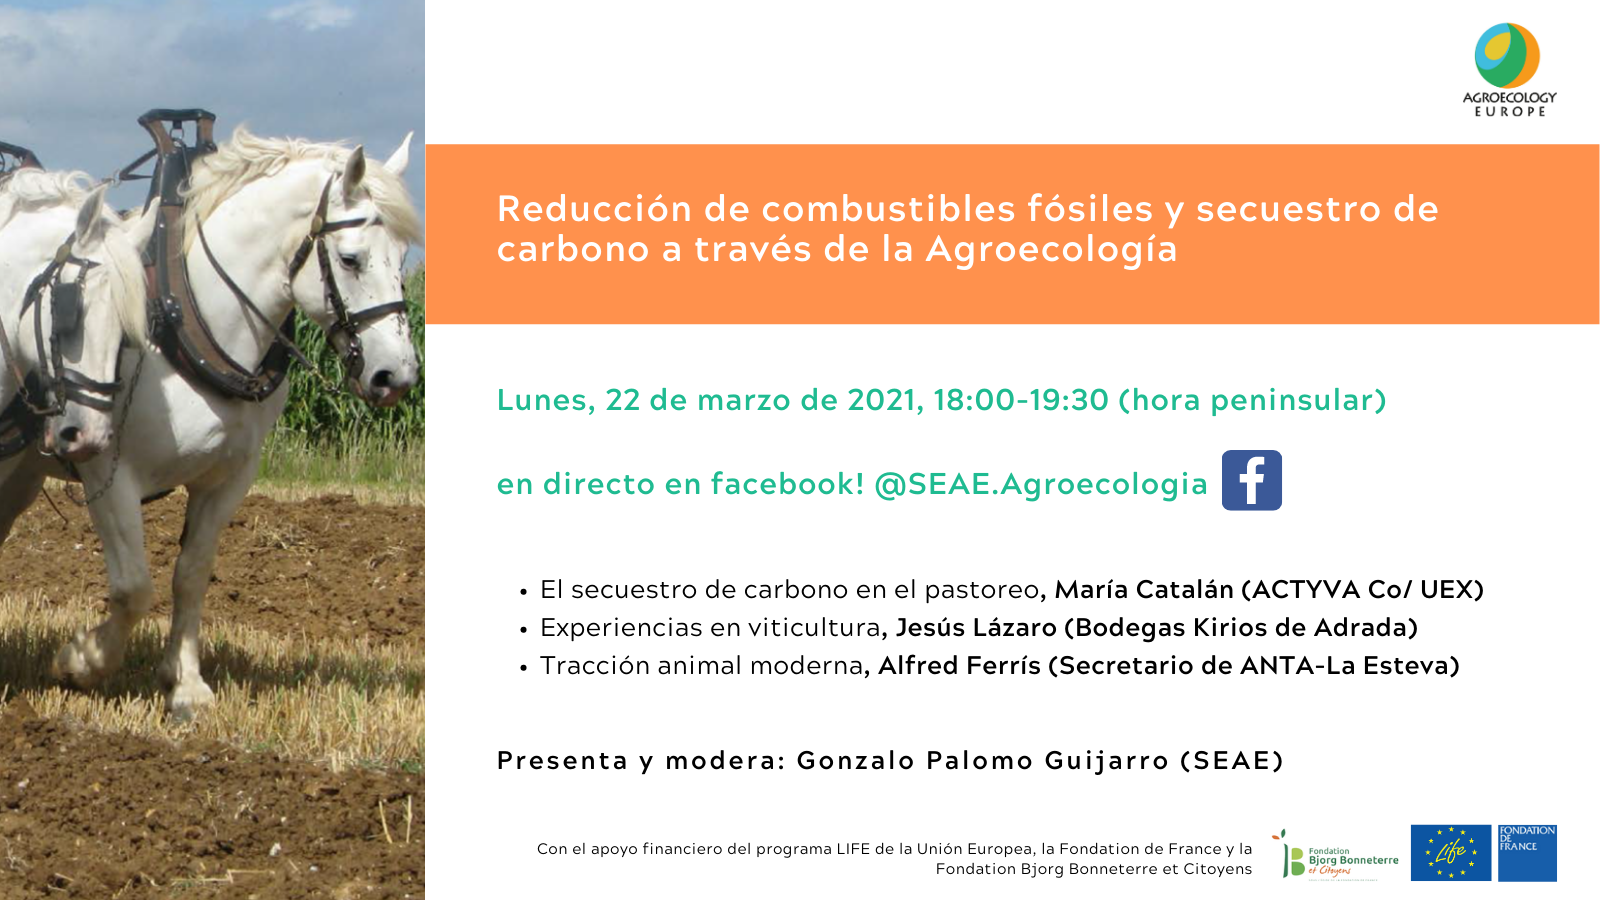 AEEU Webinar on 'Fossil fuel reduction and carbon sequestration through Agroecology' held on Monday 22nd of March 2021 from 18:00-19:30 (peninsular time) in Spanish on SEAE Facebook page